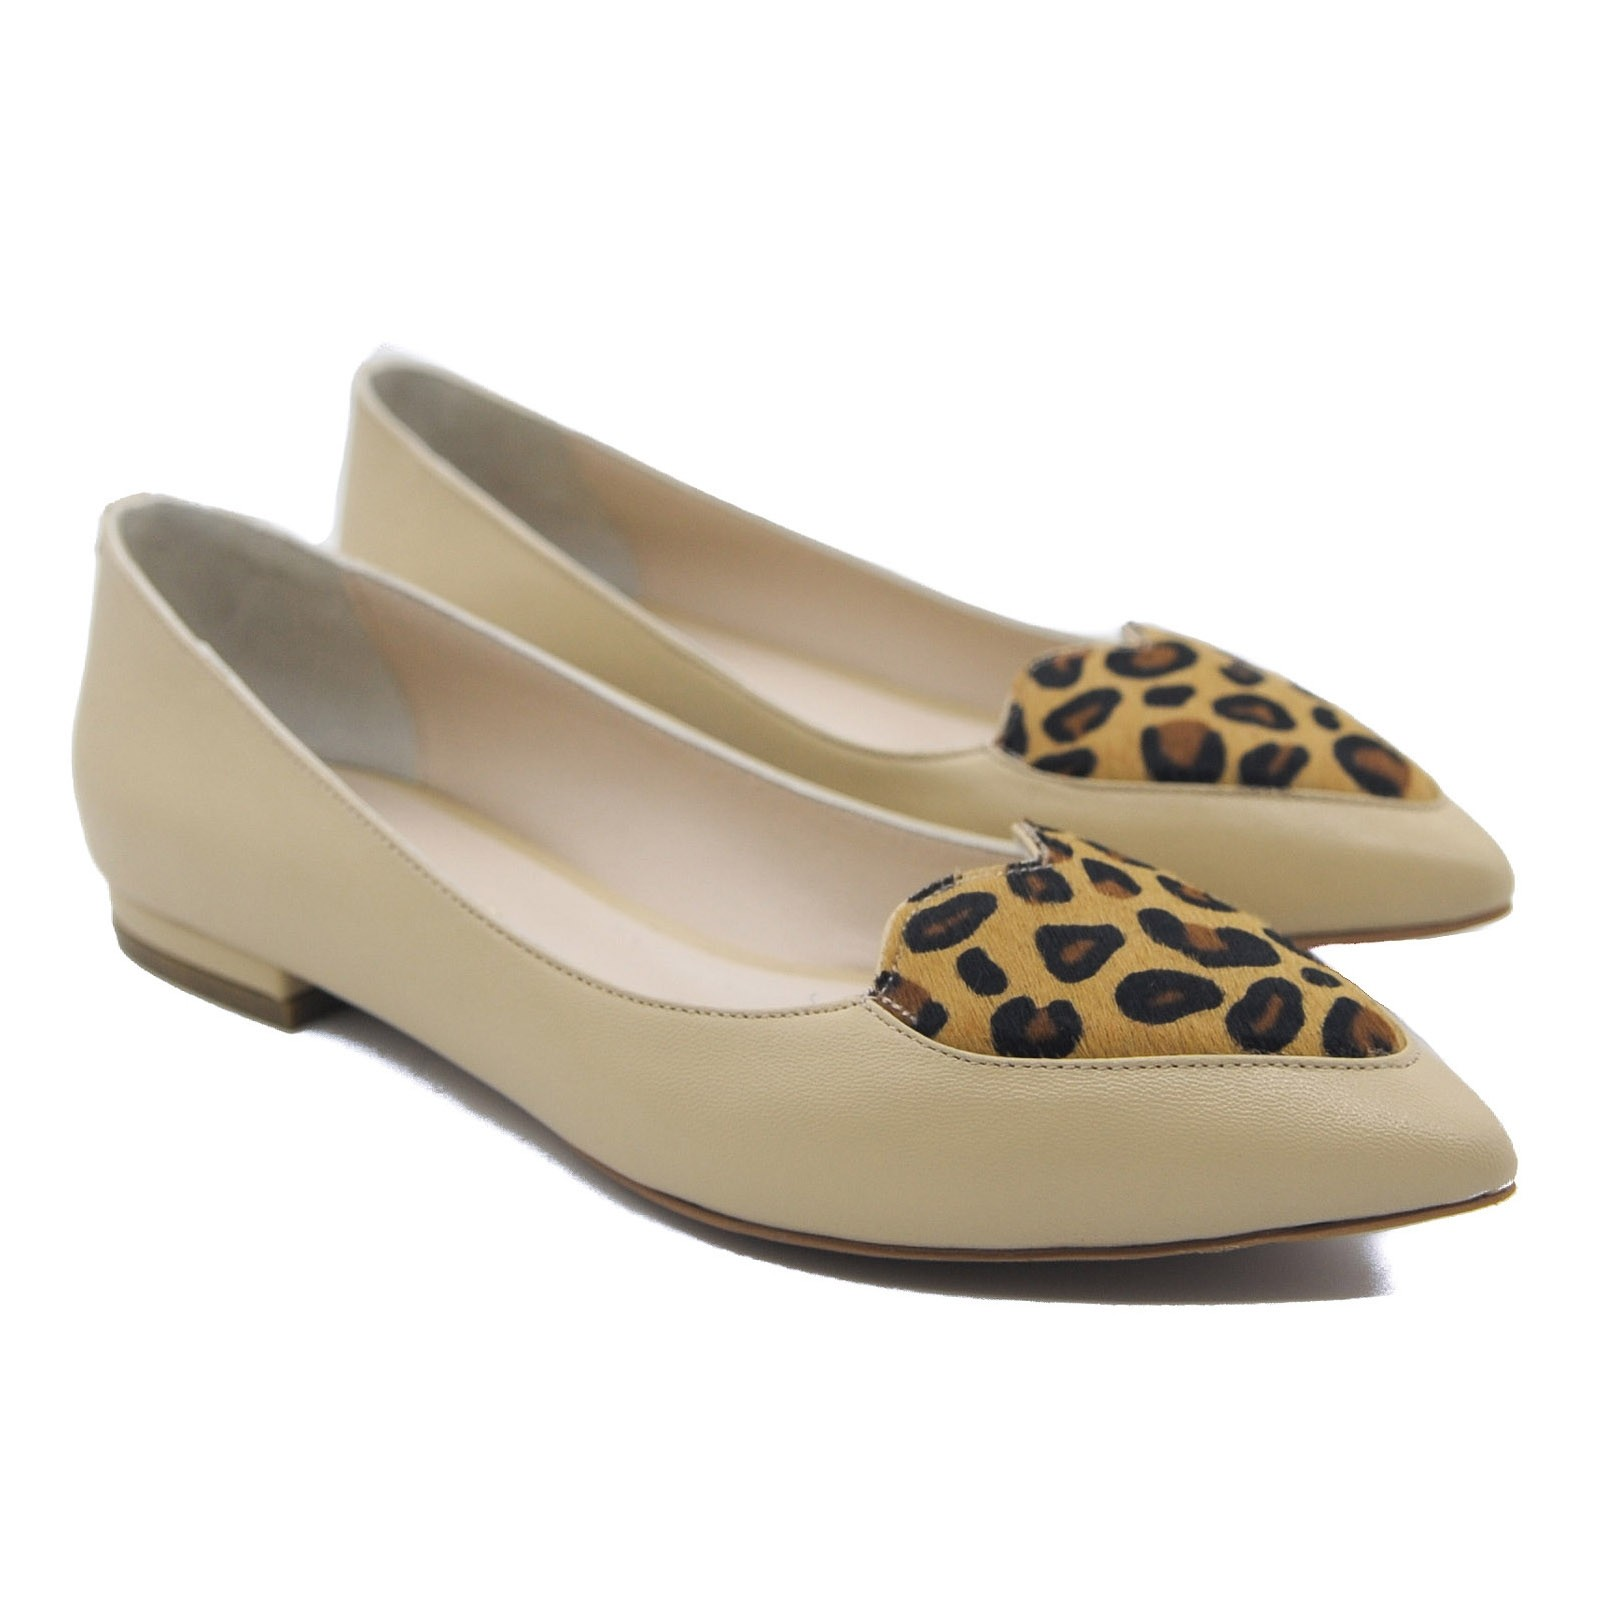 Goody2Shoes Ladies' Cream Ballet Pumps with Leopard Print Pony Hair Heart Detail